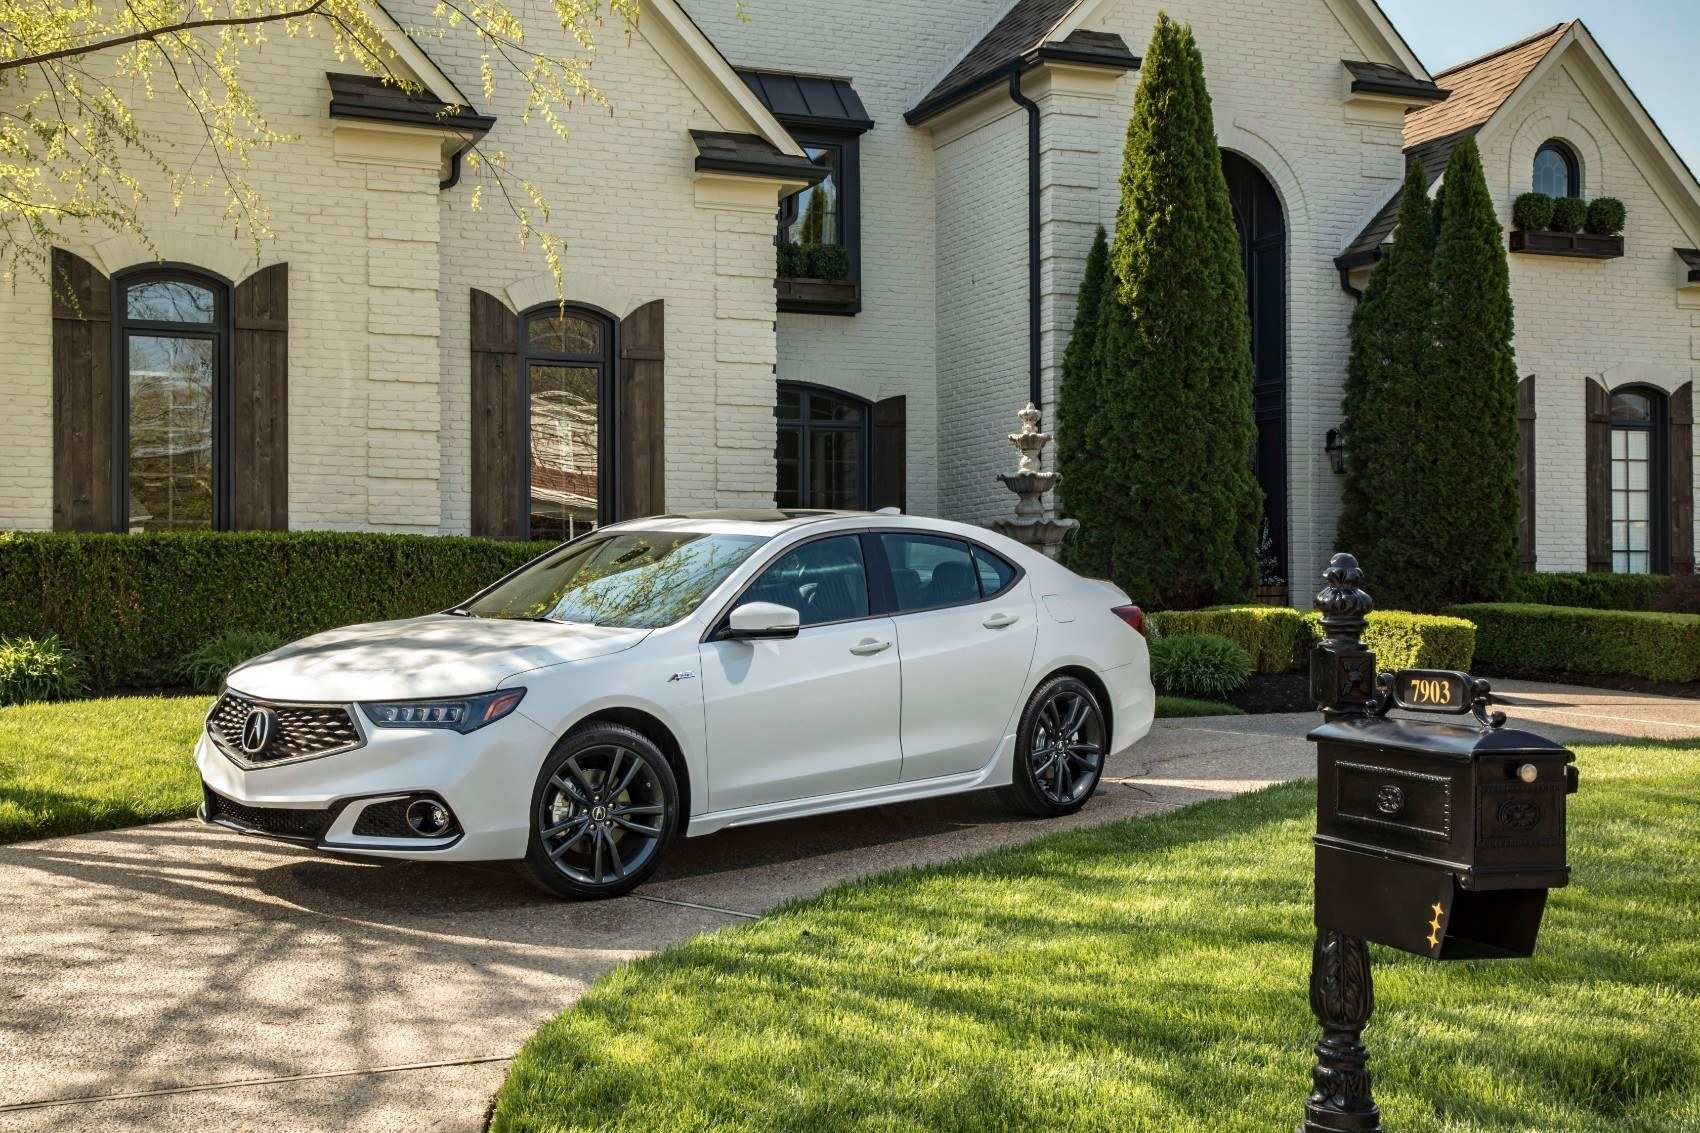 86 Best Review When Does The 2020 Acura Tlx Come Out Style with When Does The 2020 Acura Tlx Come Out